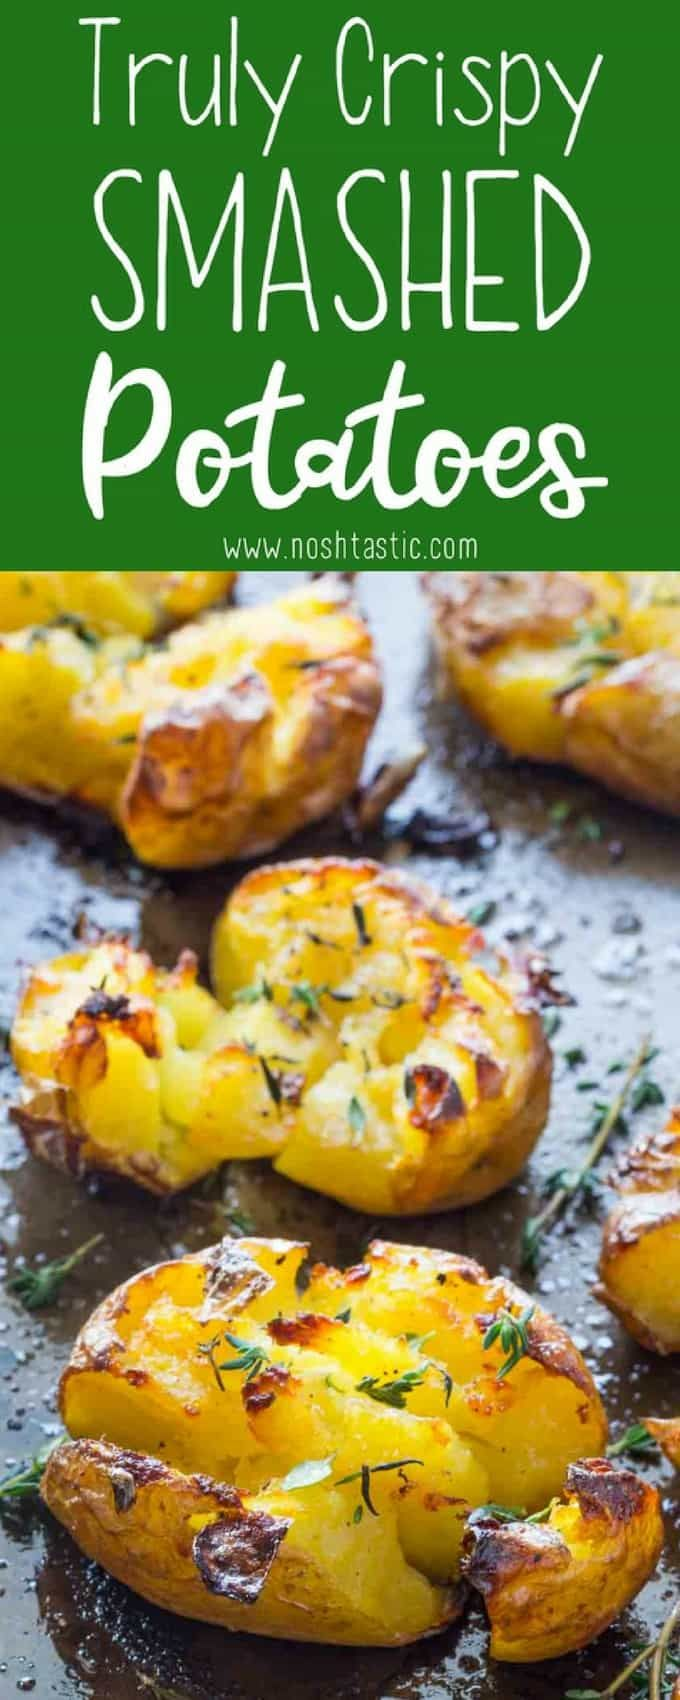 Smashed Potatoes baked with garlic, olive oil and herbs, fluffy in the middle and truly crispy on the top!! find out how to make them on noshtastic.com!!   paleo, gluten free, vegan, whole30, healthy recipe, side dish. baked potato, roasted potato.